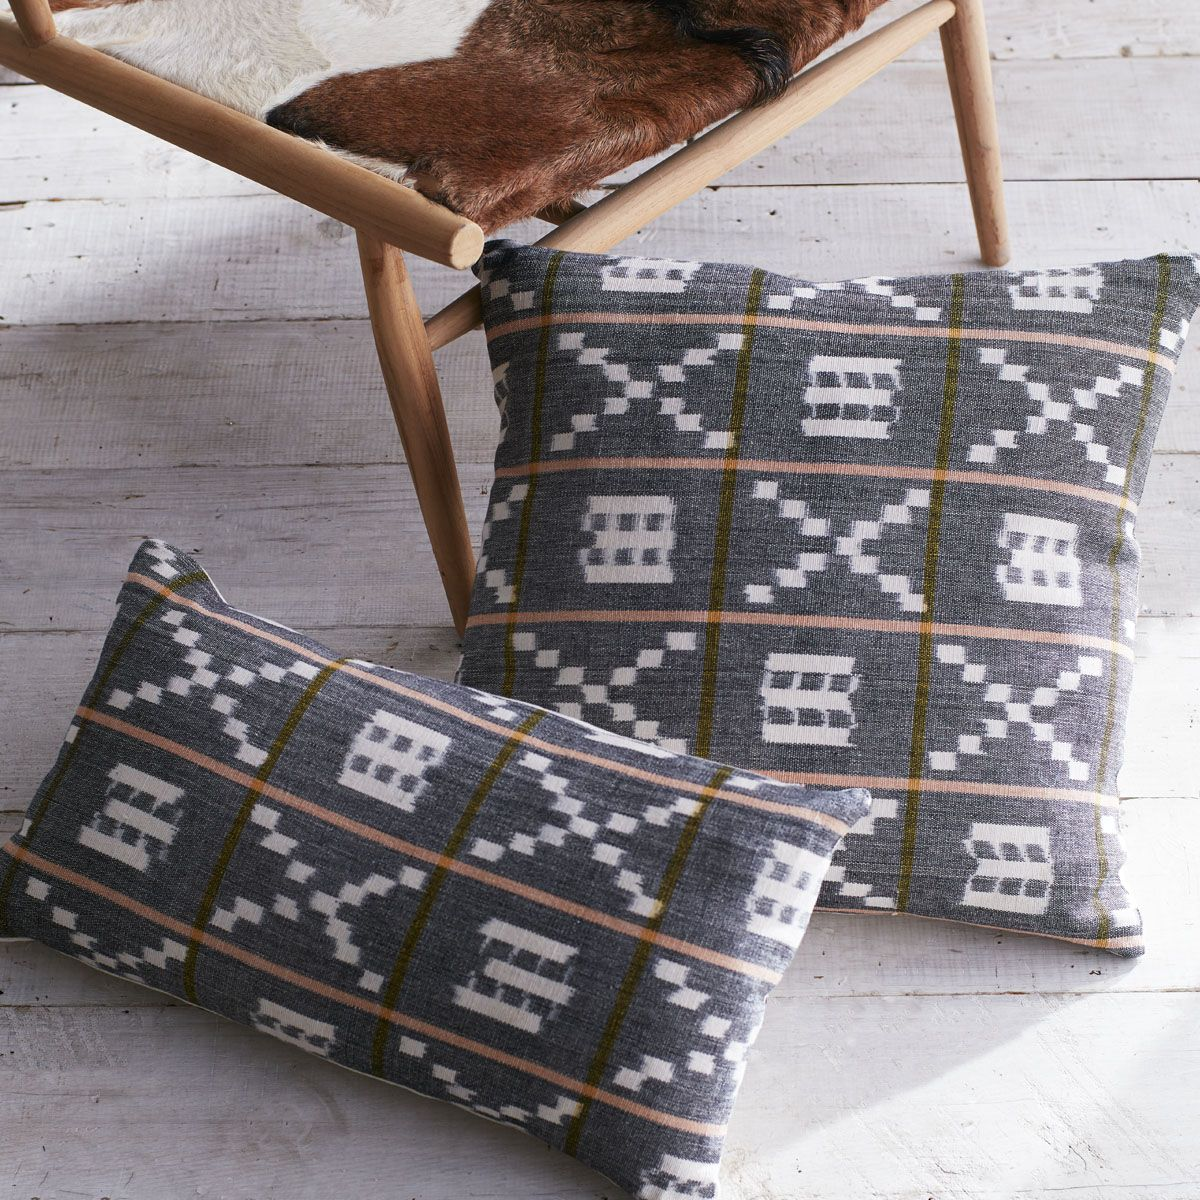 Gaia lyle pillow square pillows and products